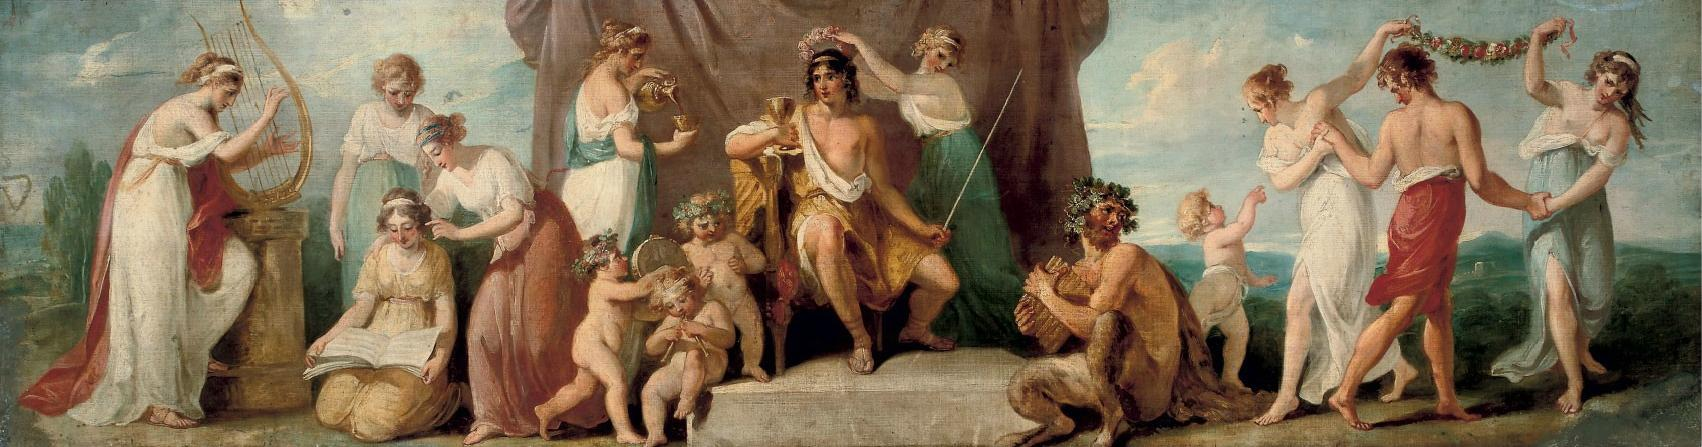 Angelica Kauffmann - Apollo and the Muses on Mount Parnassus.jpg